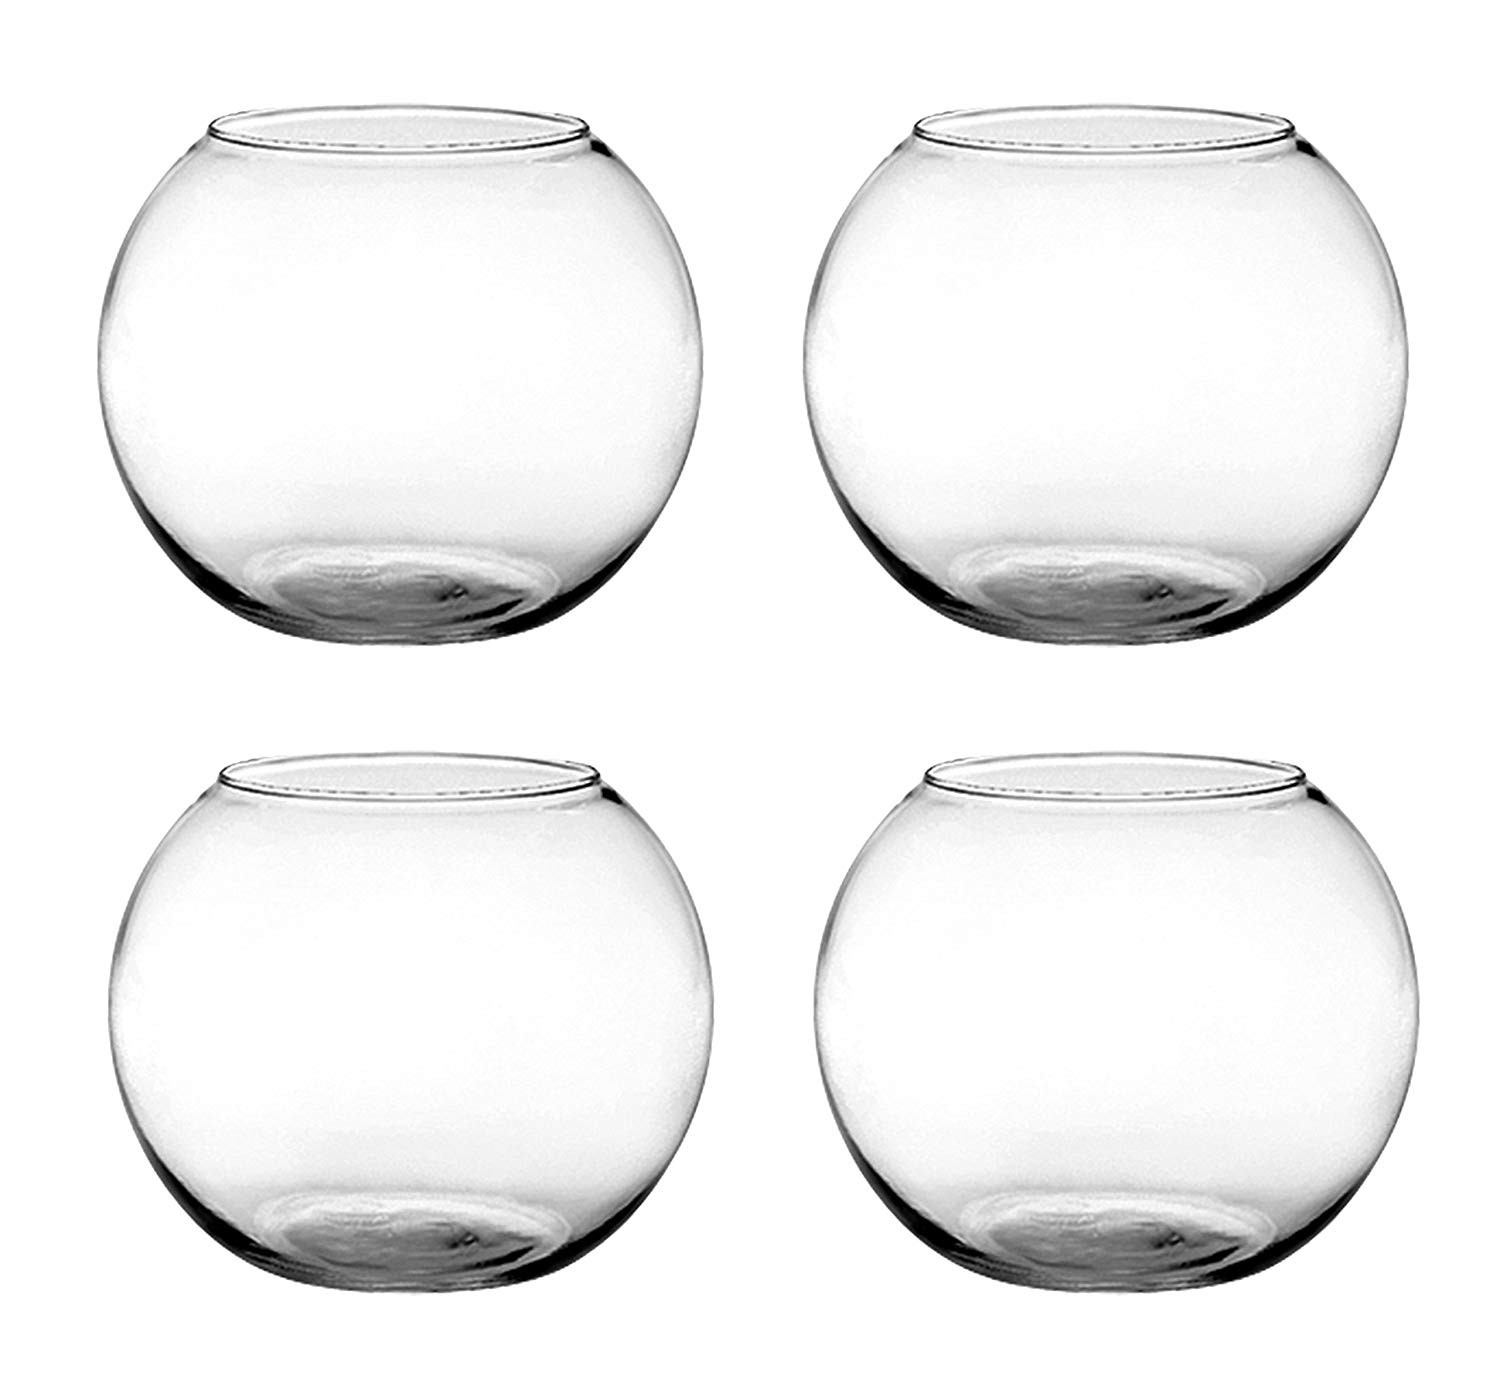 cheap 9 inch cylinder vase of amazon com set of 4 syndicate sales 6 inches clear rose bowl throughout amazon com set of 4 syndicate sales 6 inches clear rose bowl bundled by maven gifts gard